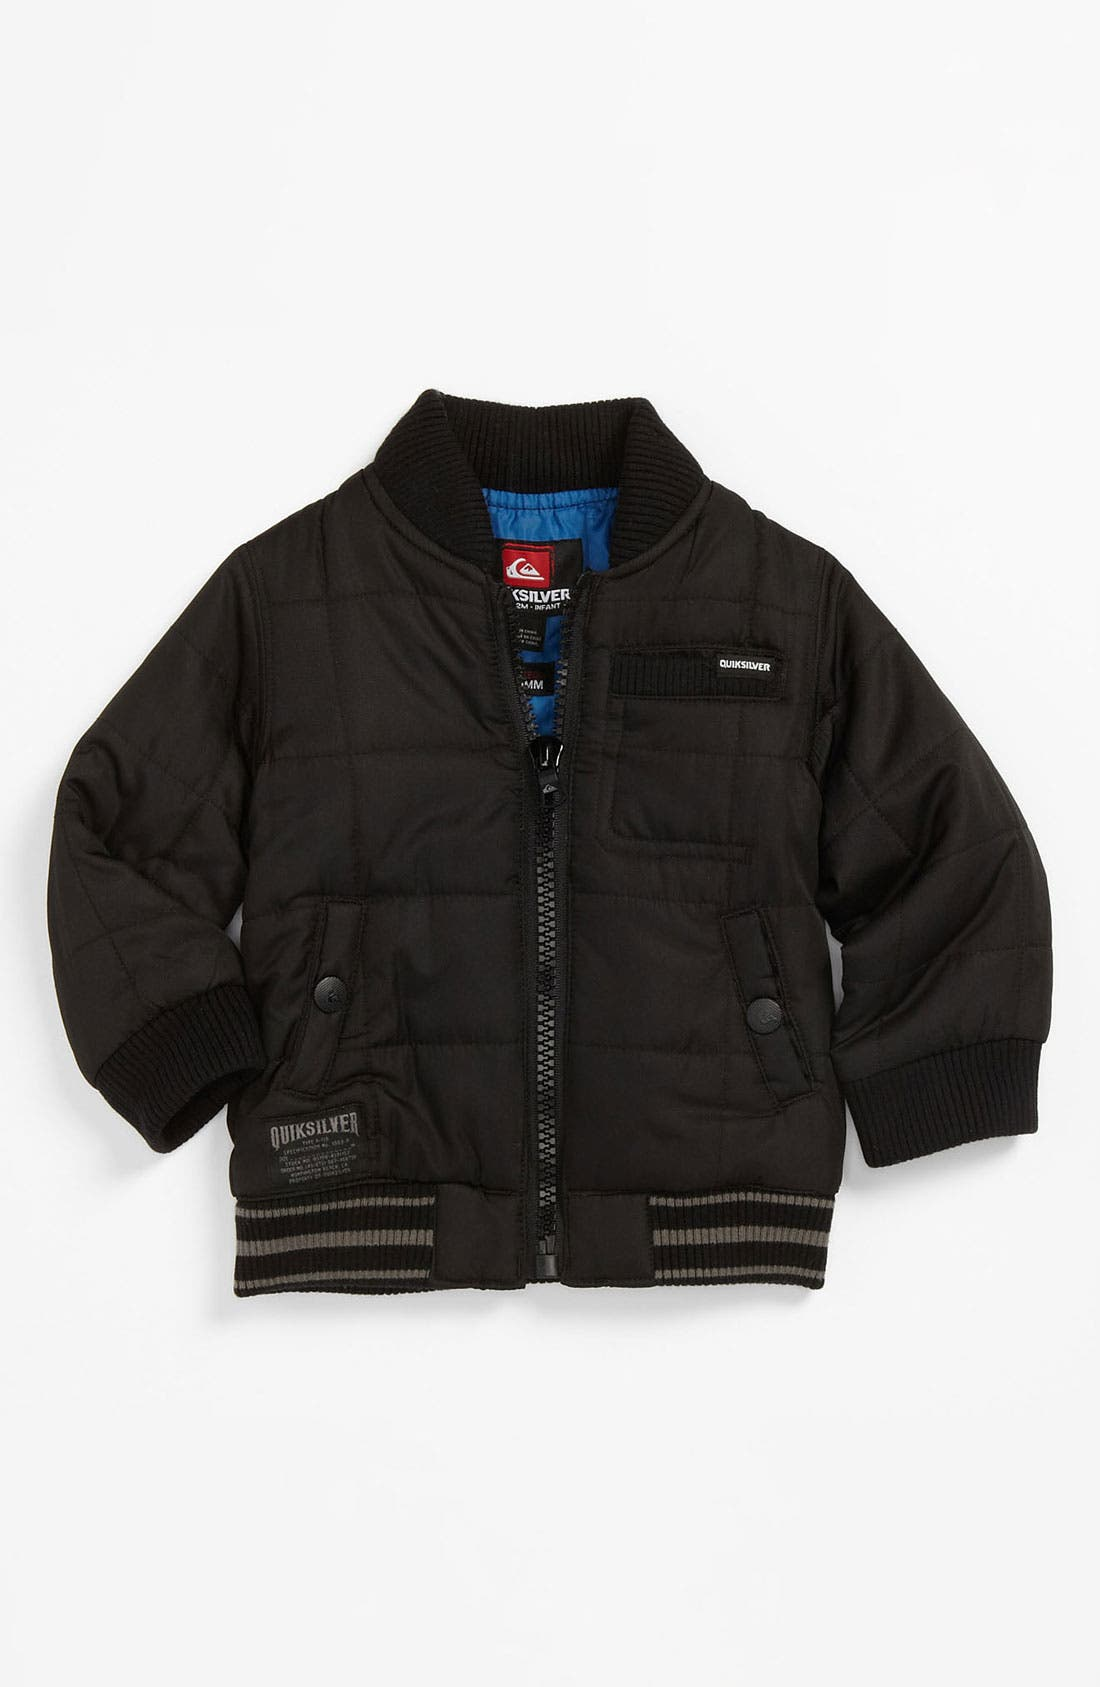 Alternate Image 1 Selected - Quiksilver 'Recon' Quilted Jacket (Toddler)